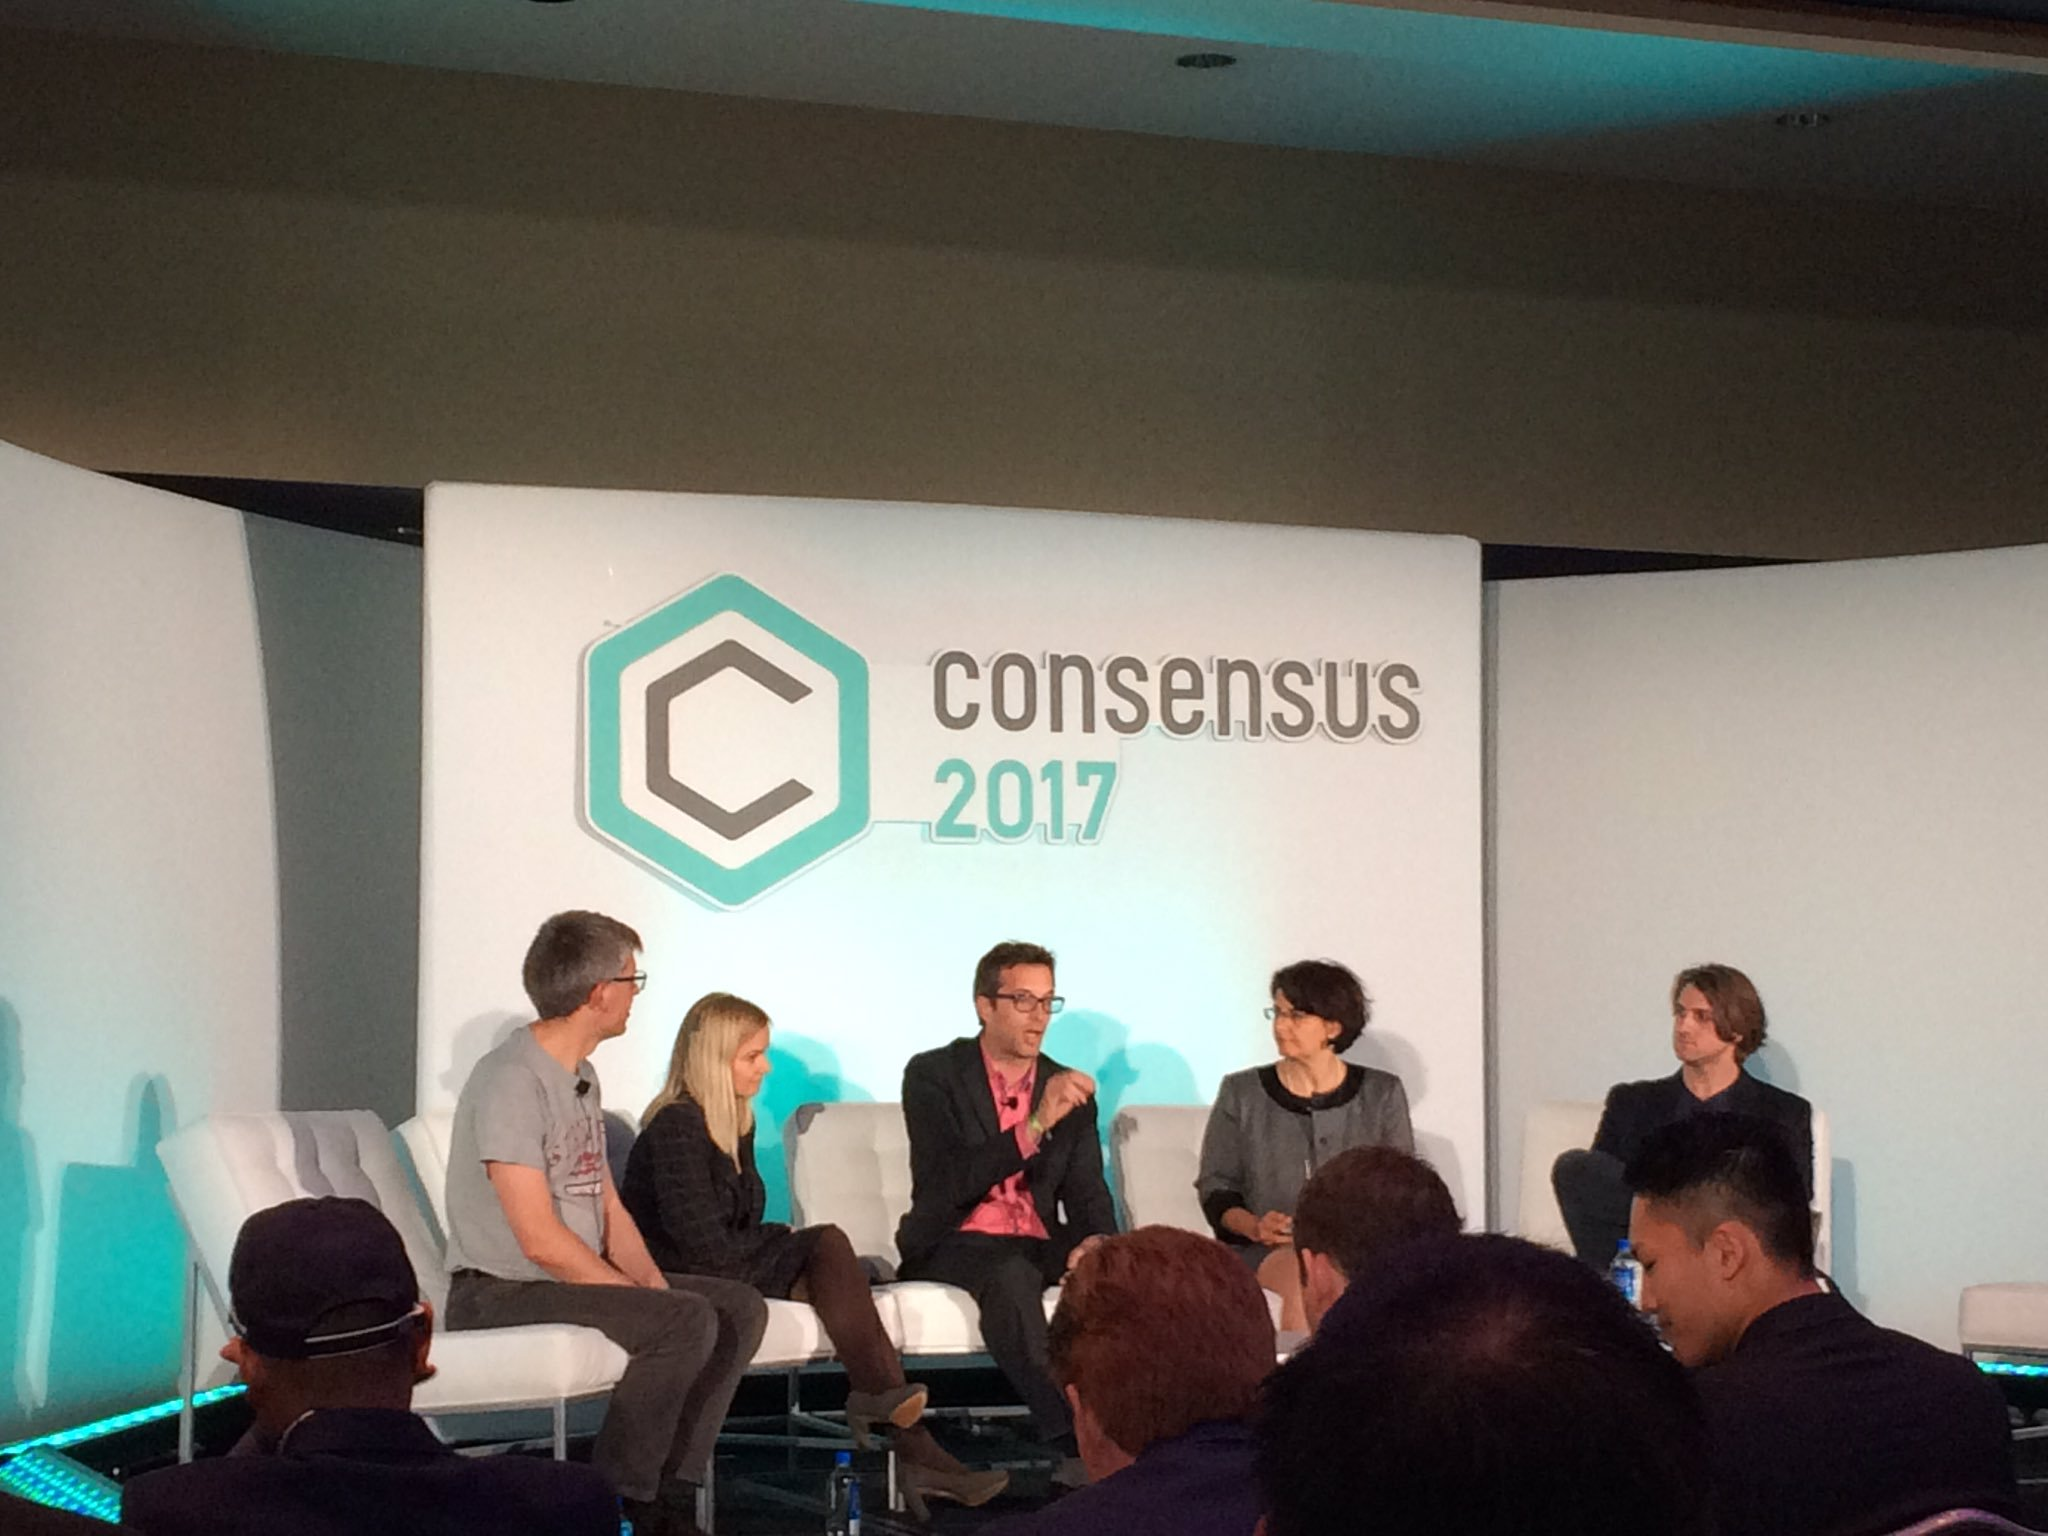 Consensus 2017 - Multi-industry advancements